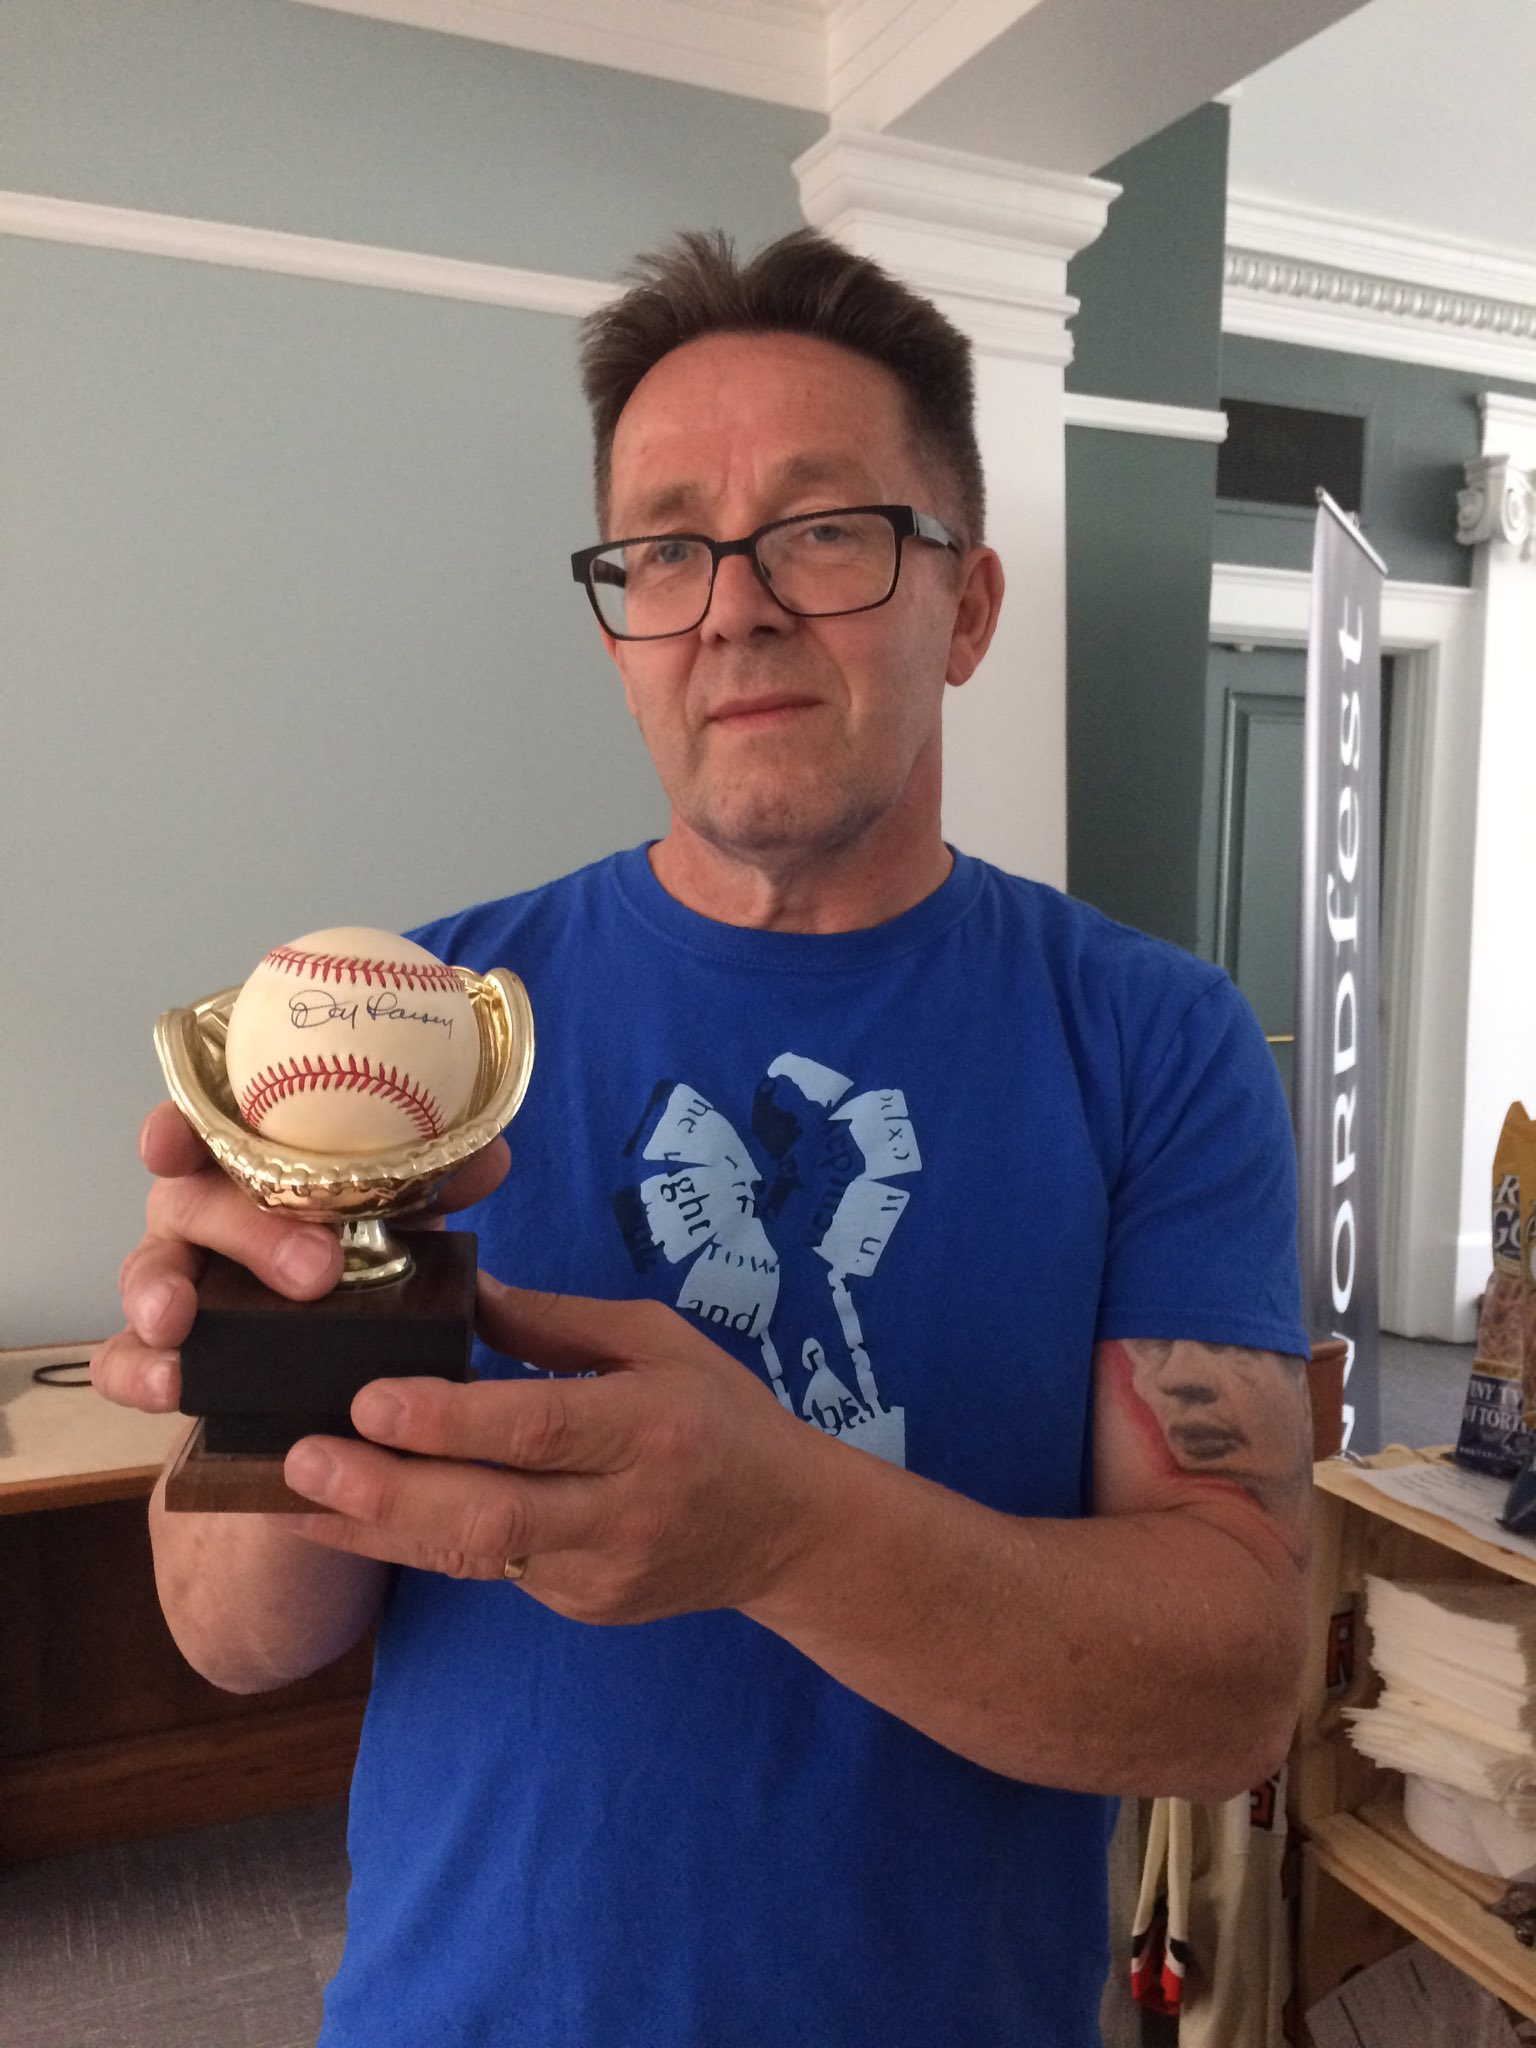 Our fab volunteer Ian with a Don Larsen autographed ball, the only pitcher to pitch a perfect game in the World Series #LetsPlayBall https://t.co/5J8yh3BZ1z